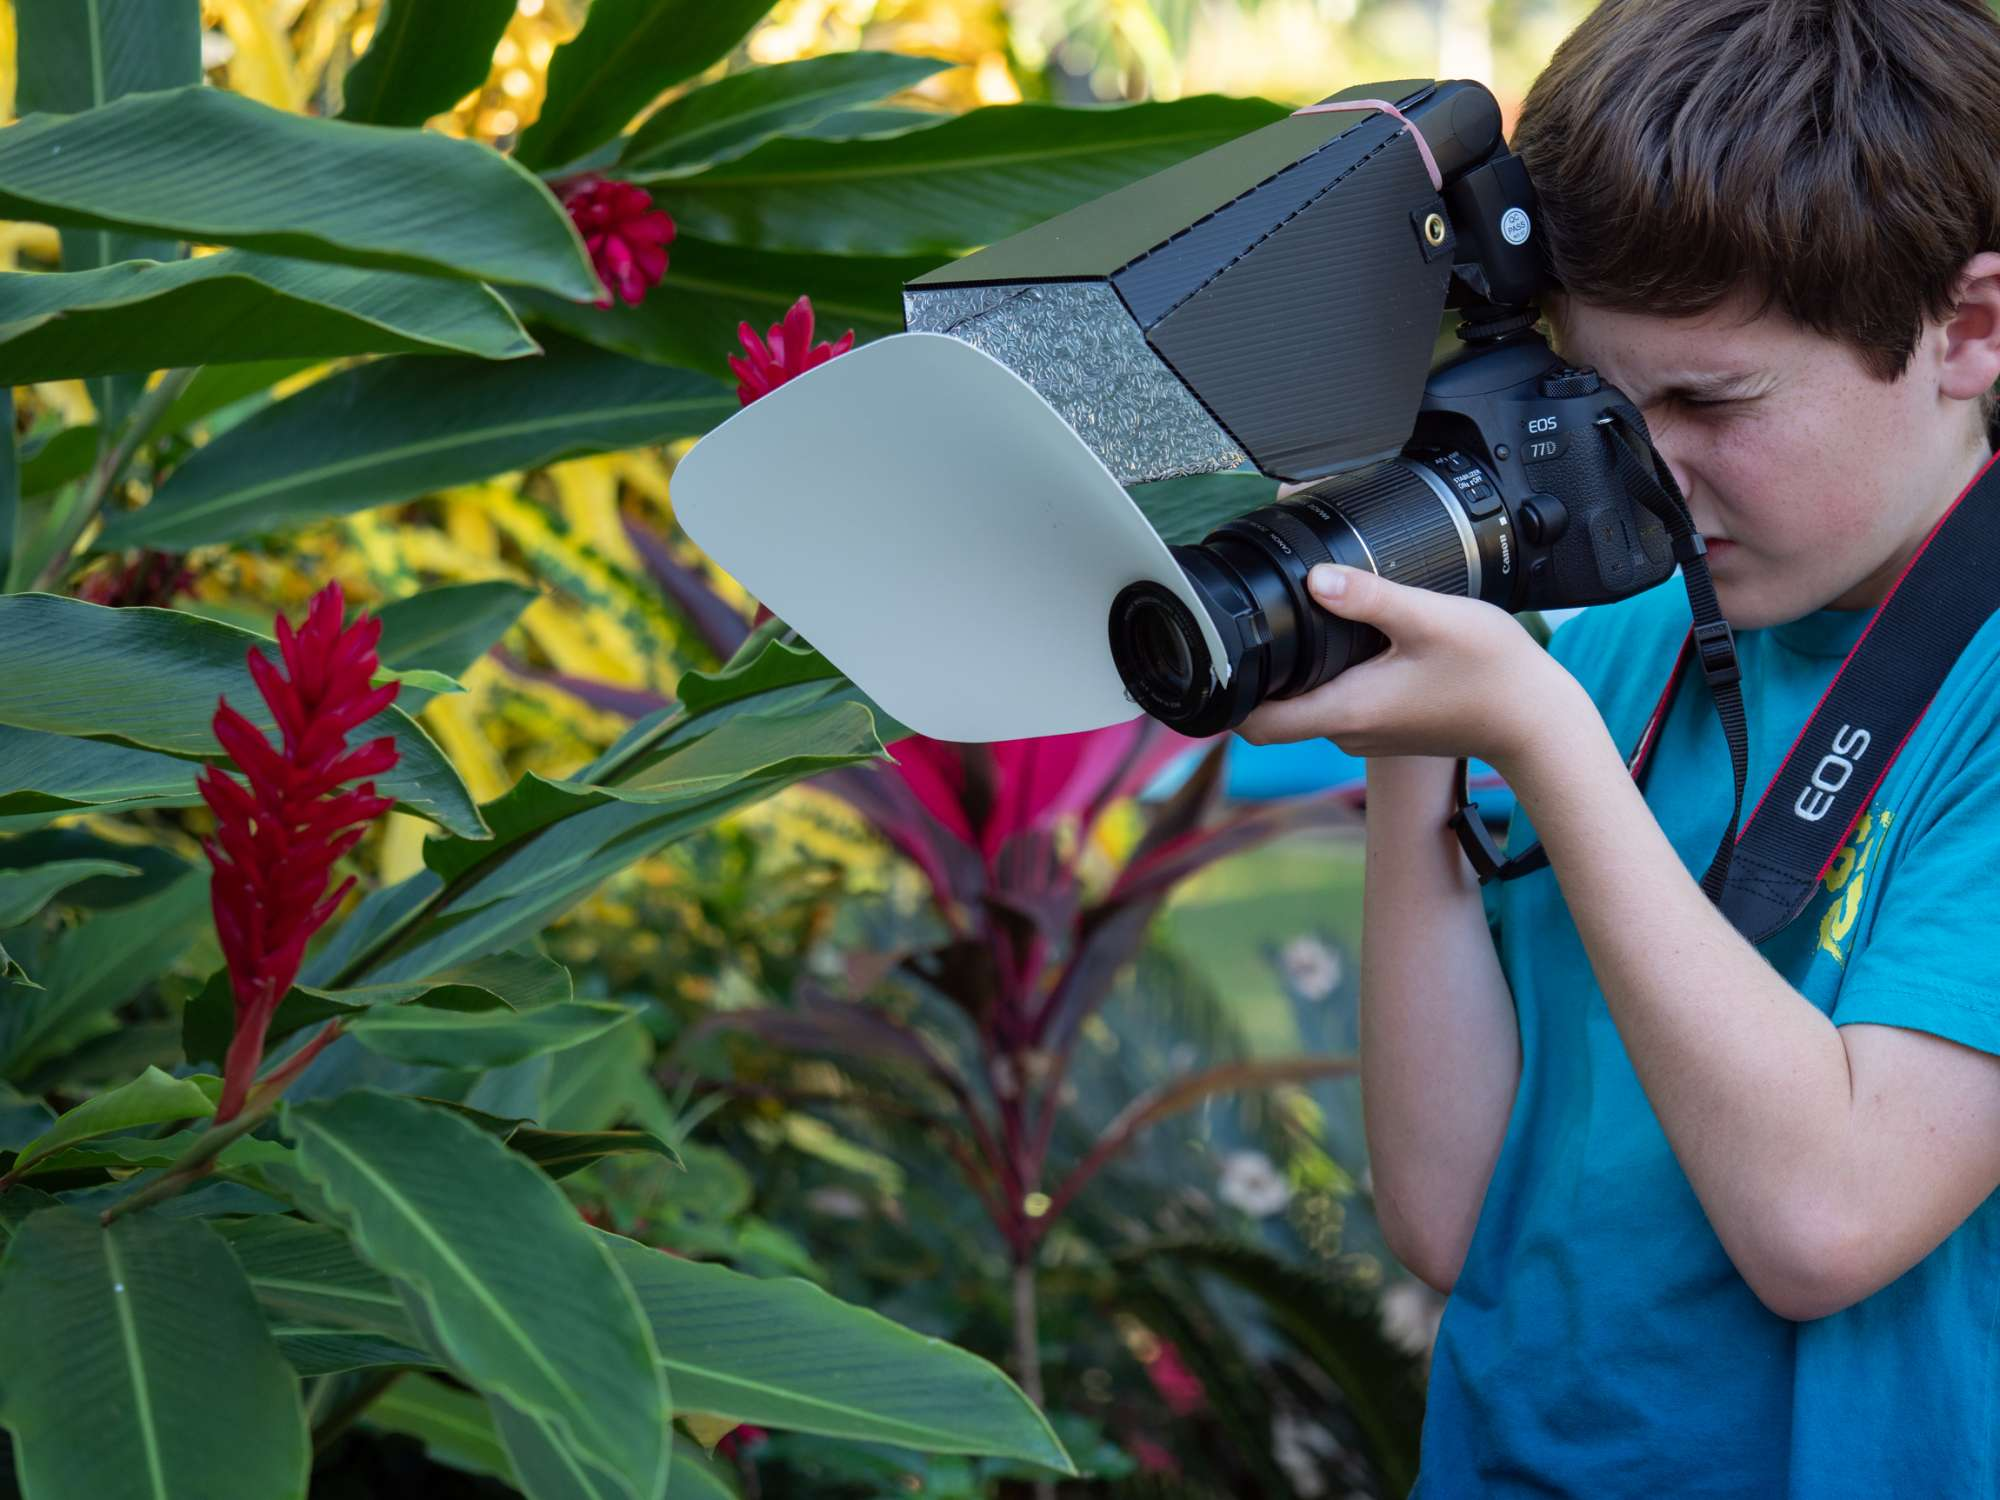 Little buggers Boy using Canon 77D DSLR with CygnusTech flash diffuser to take photographs of flower.